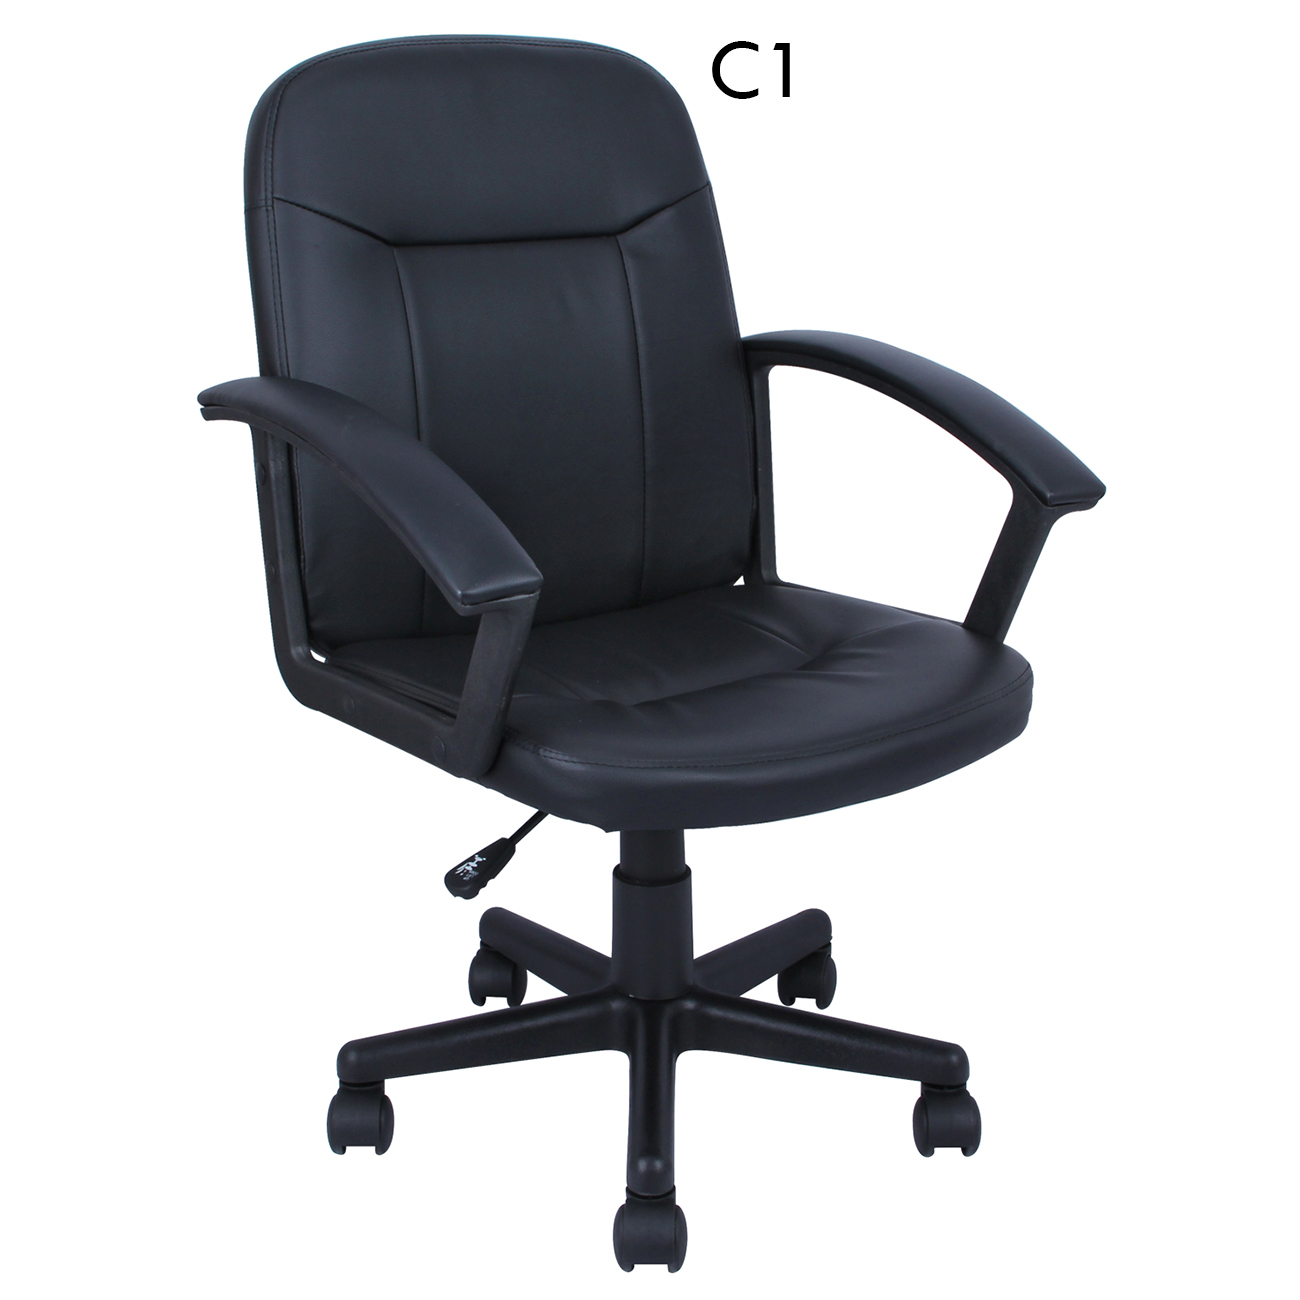 high quality office chairs ergonomic linen club chair back pu leather executive desk